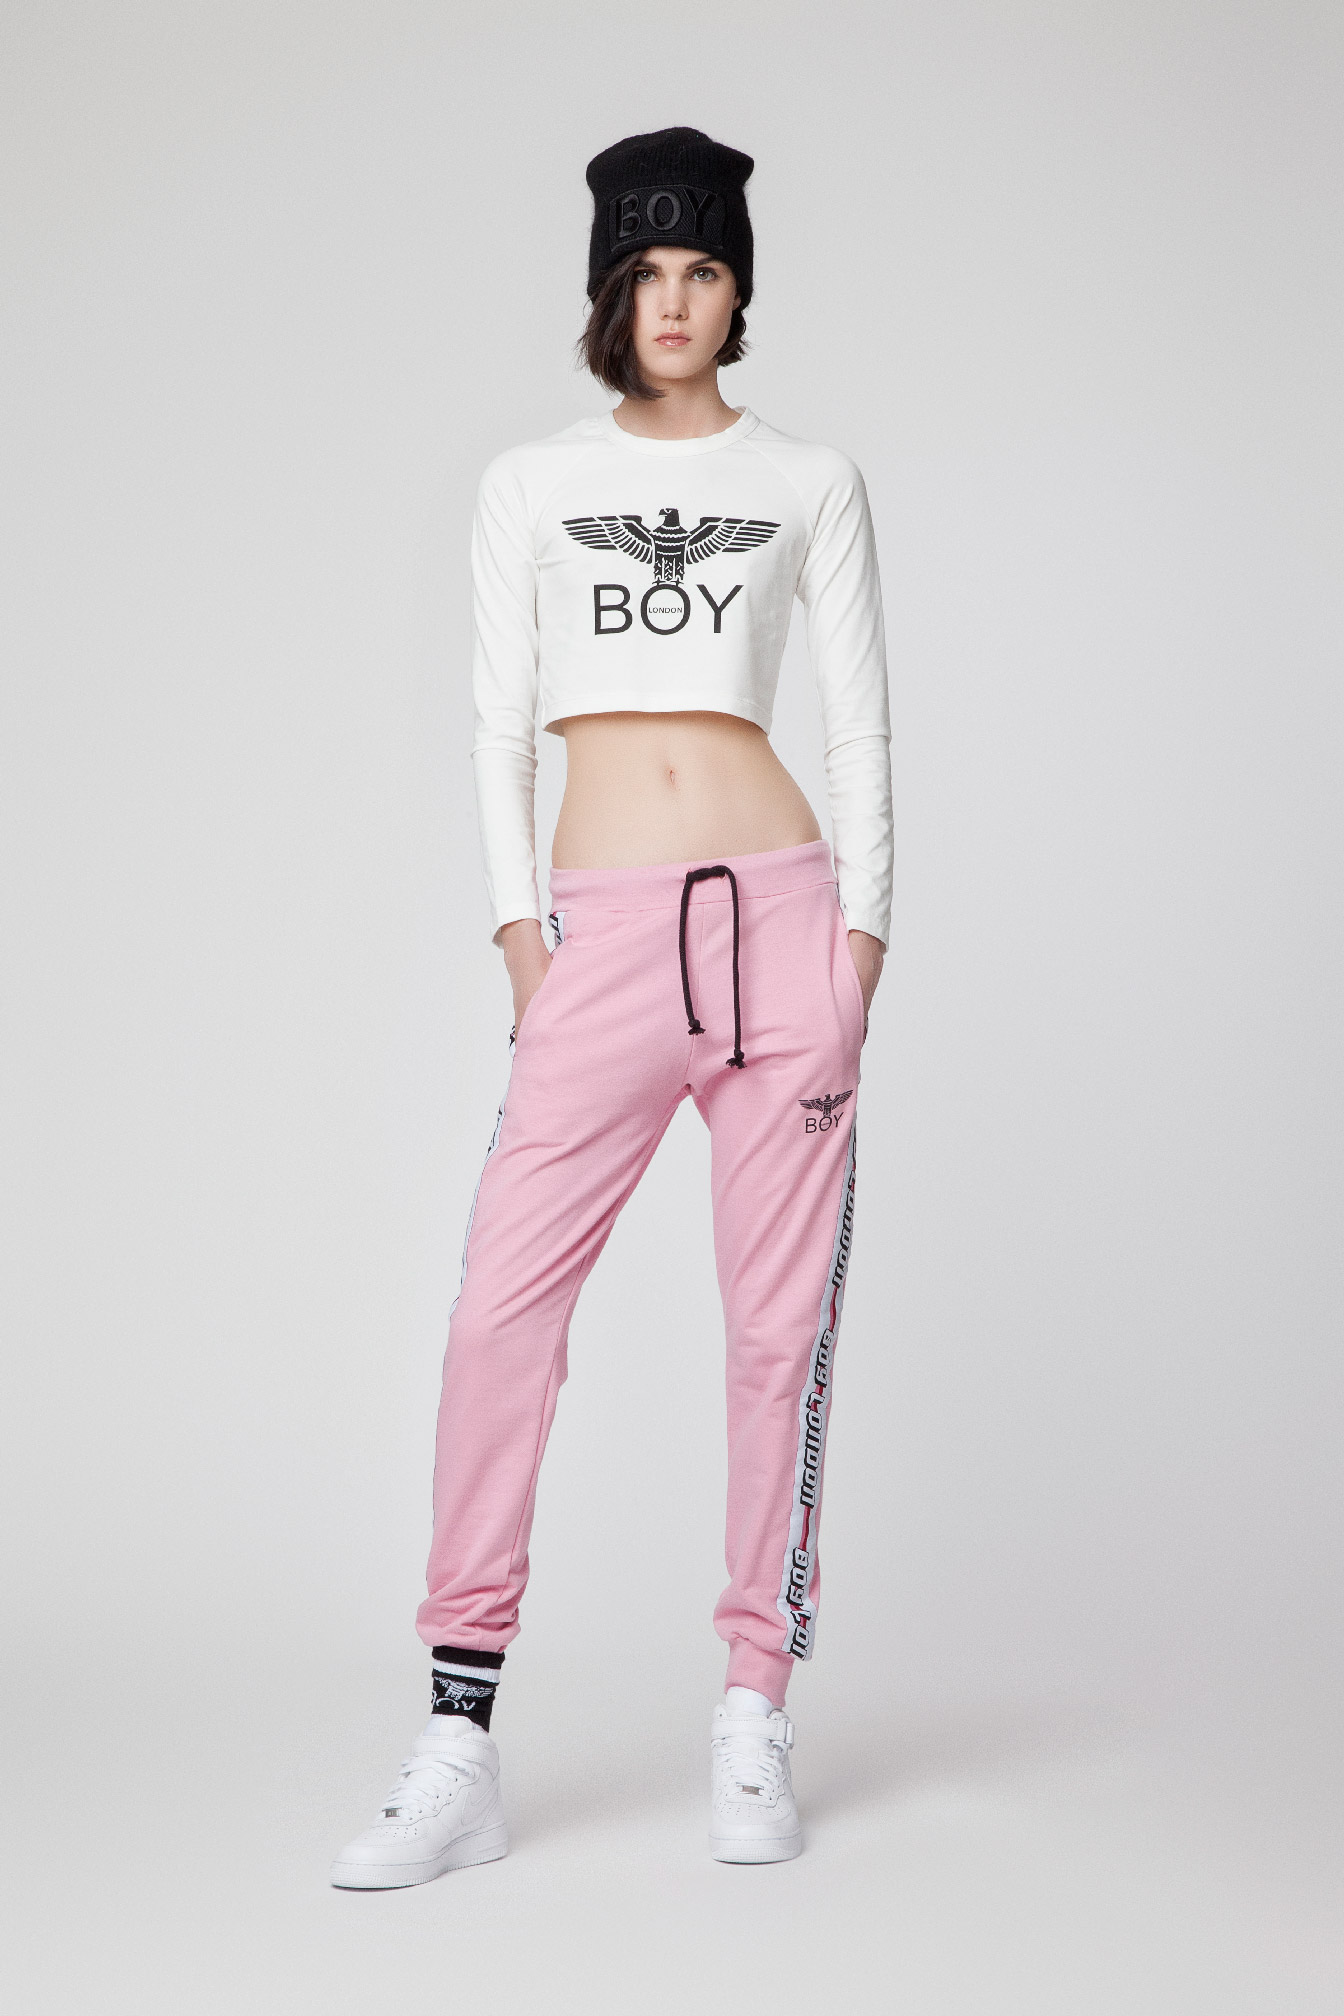 T-SHIRT - BLD2054 - BOY LONDON